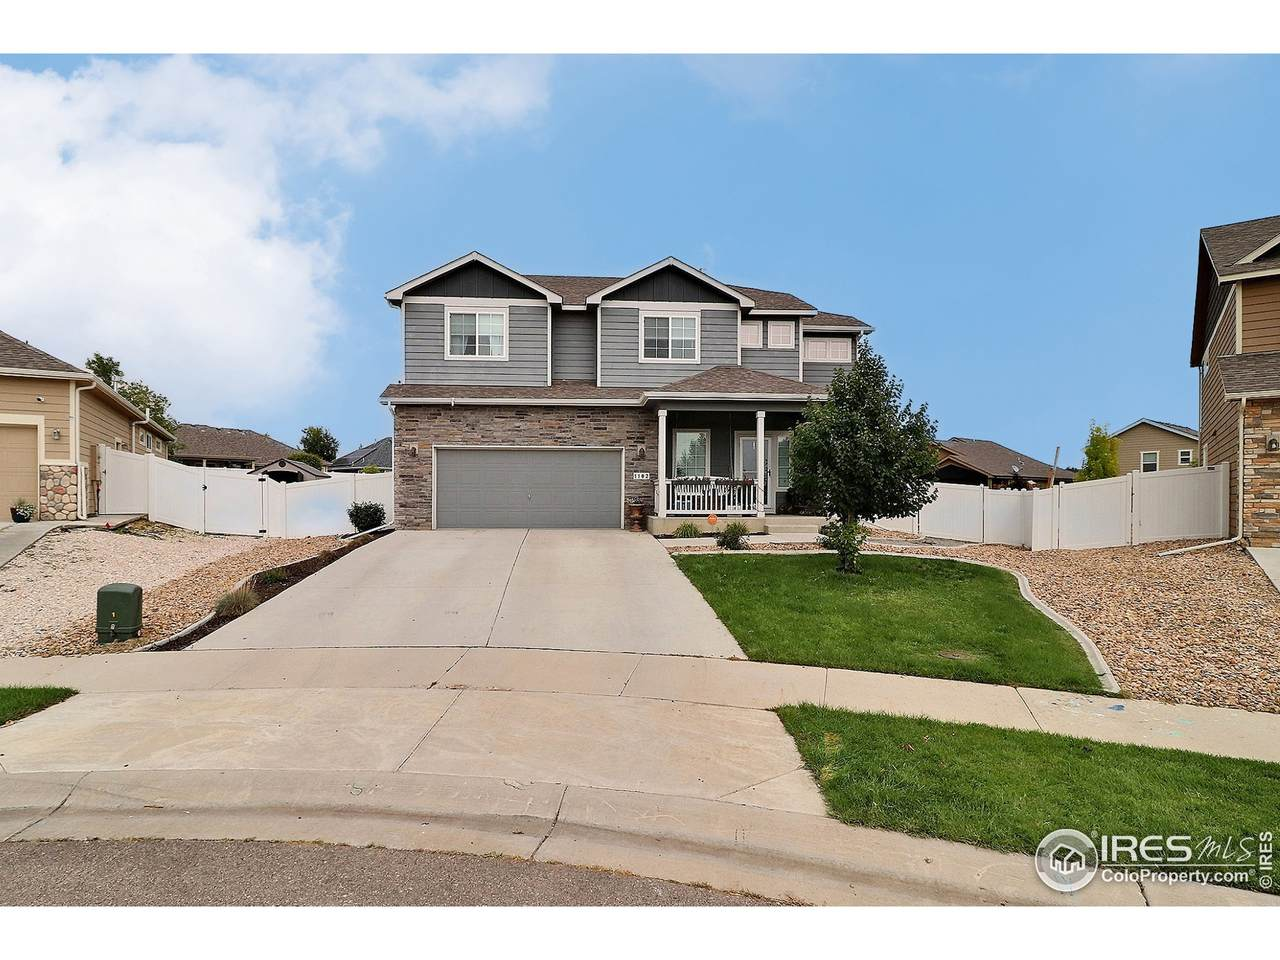 1102 78th Ave Ct - Photo 1